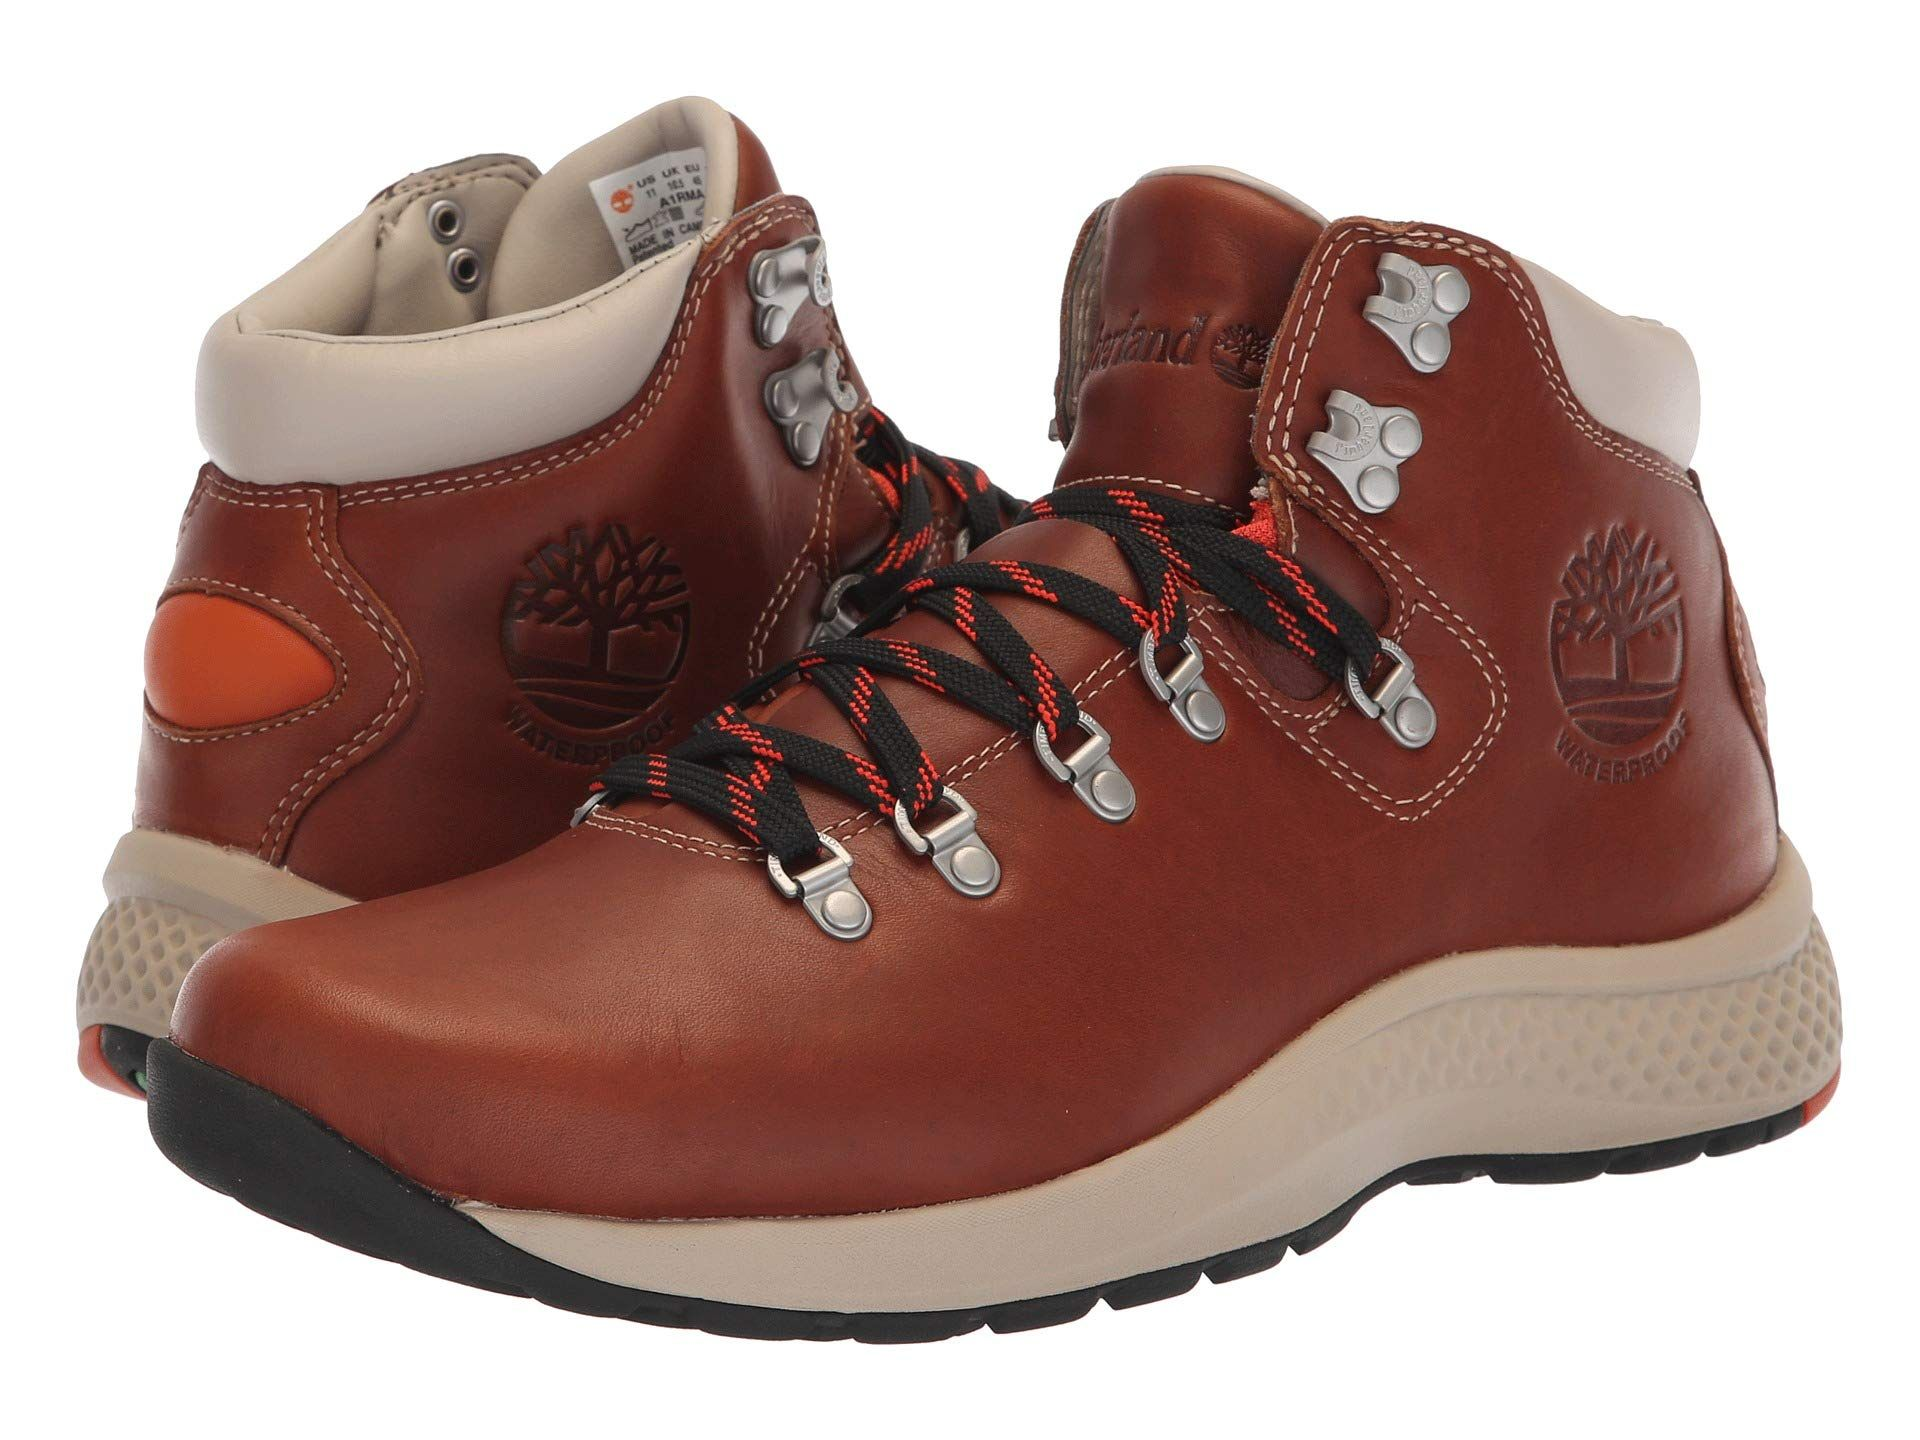 bc550a7aa45 10 Best Hiking Boots and Shoes to Take On Any Trail or Trek